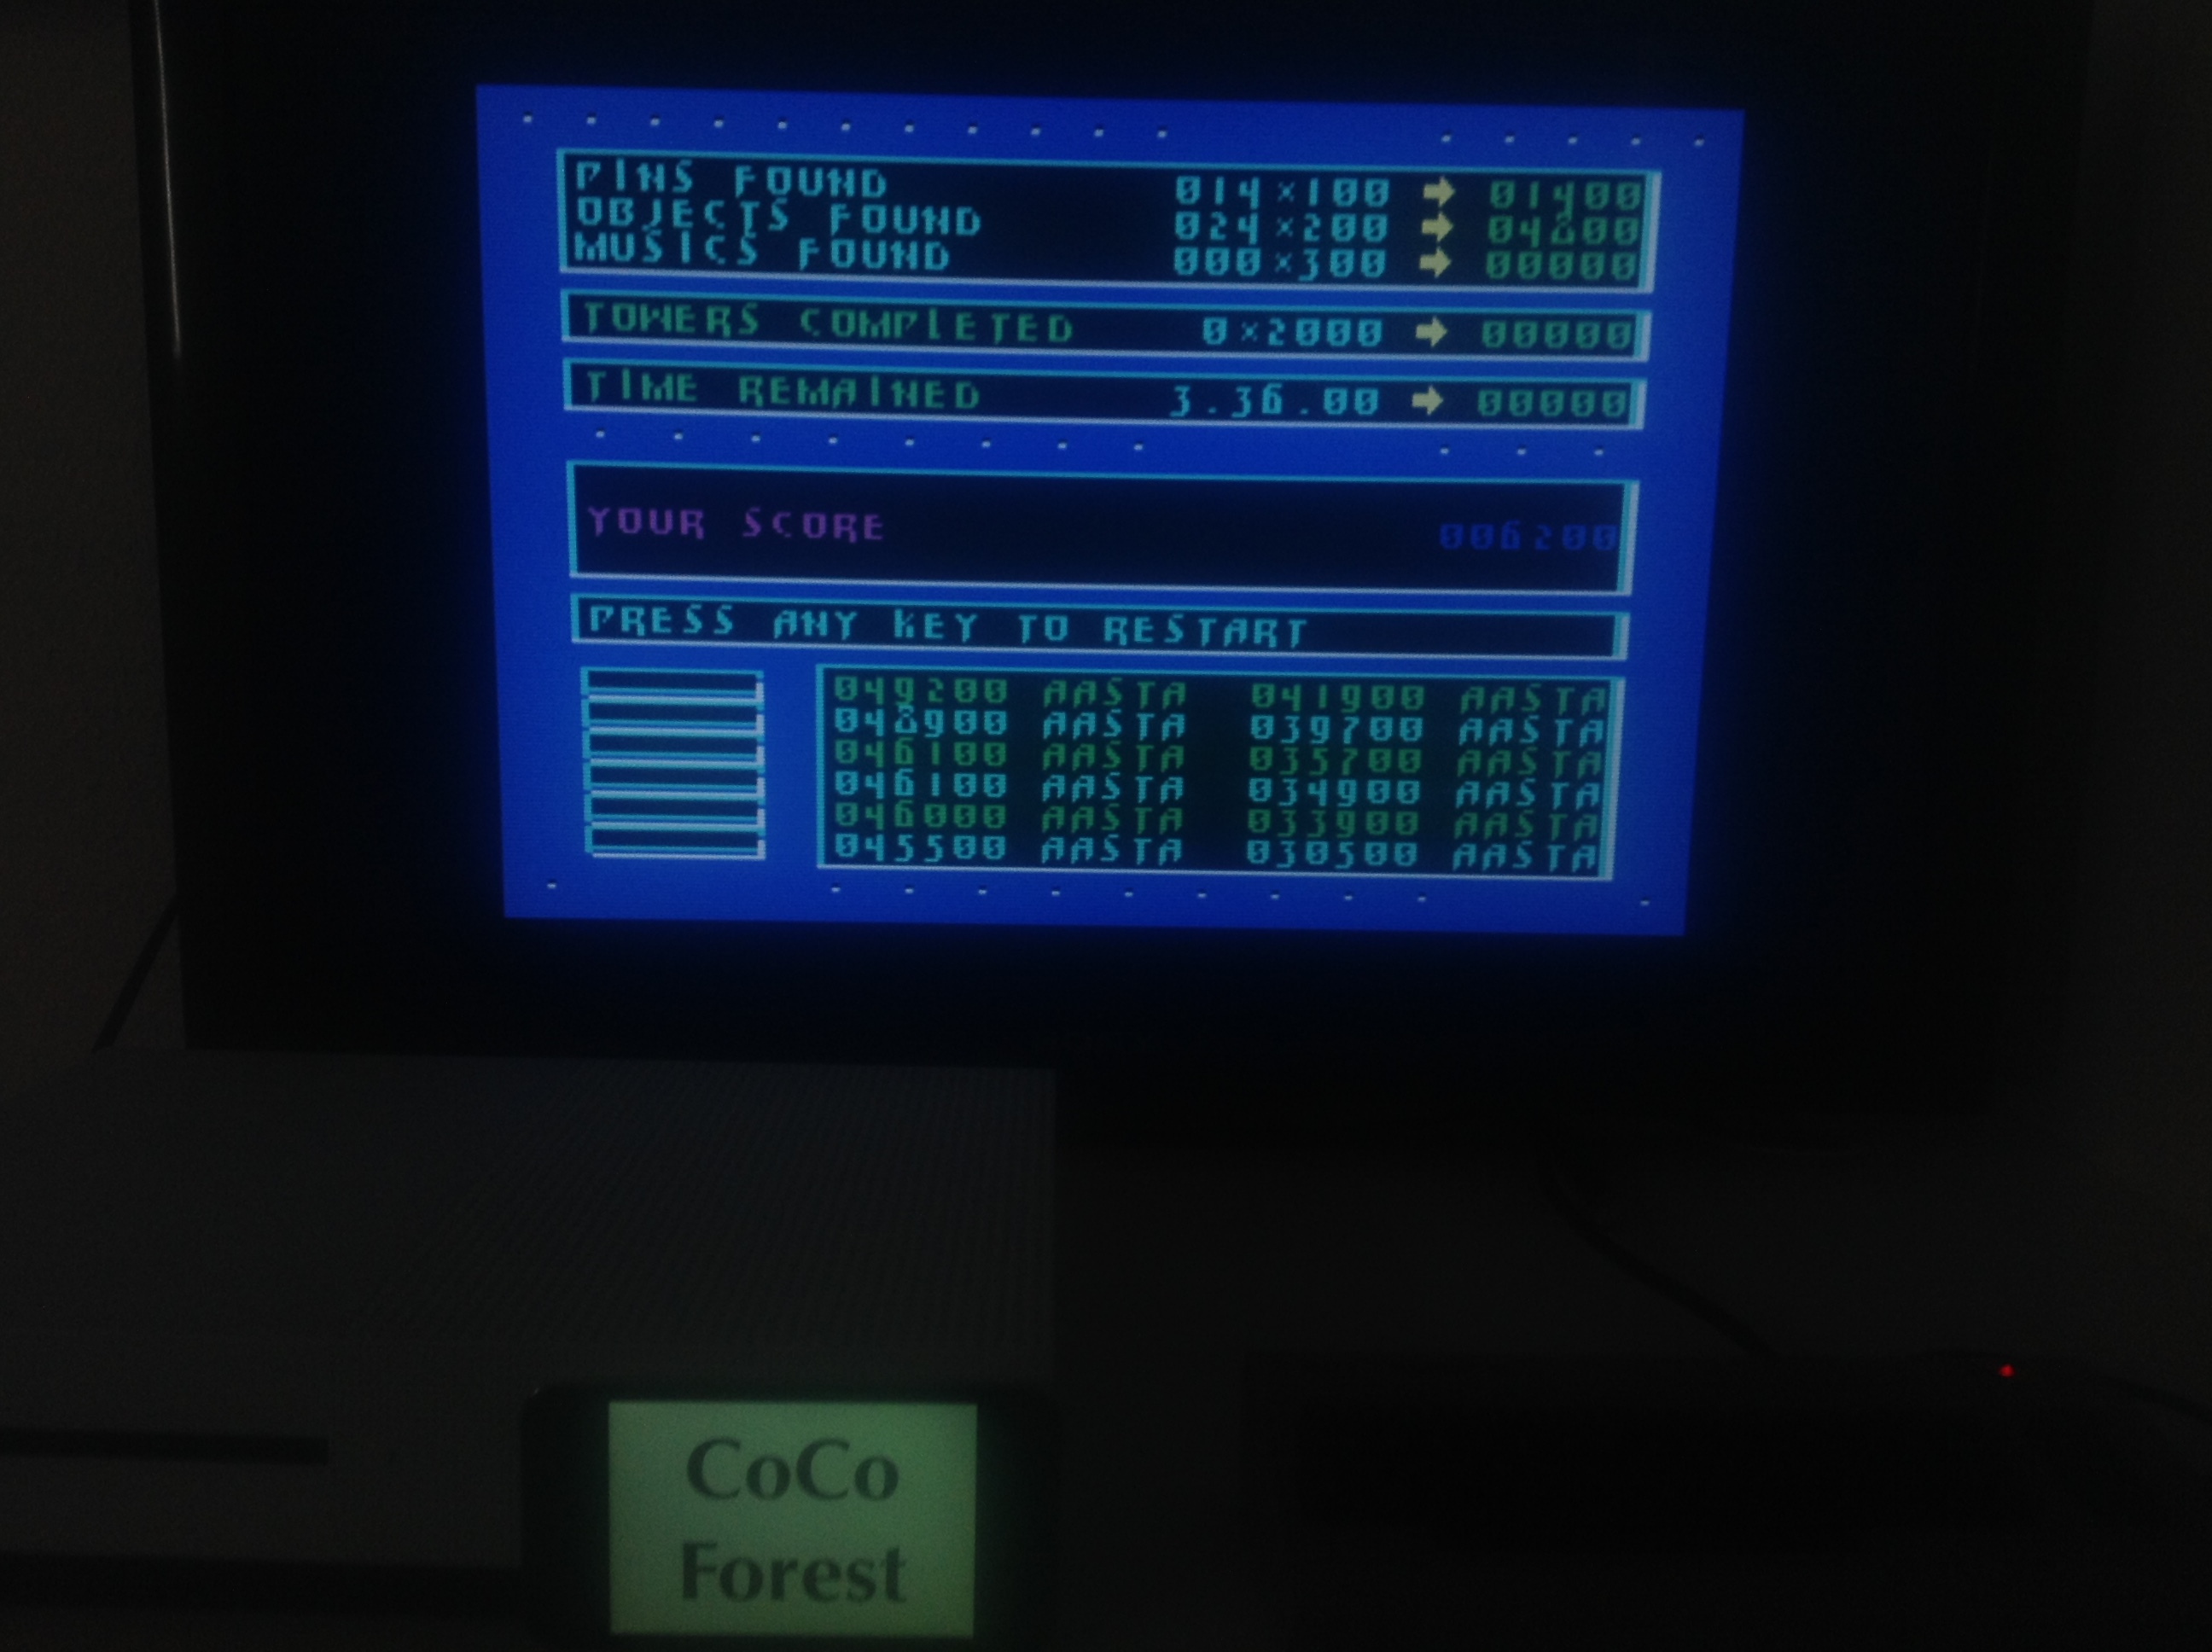 CoCoForest: Impossible Mission 2 (Commodore 64 Emulated) 6,200 points on 2018-04-20 09:55:01